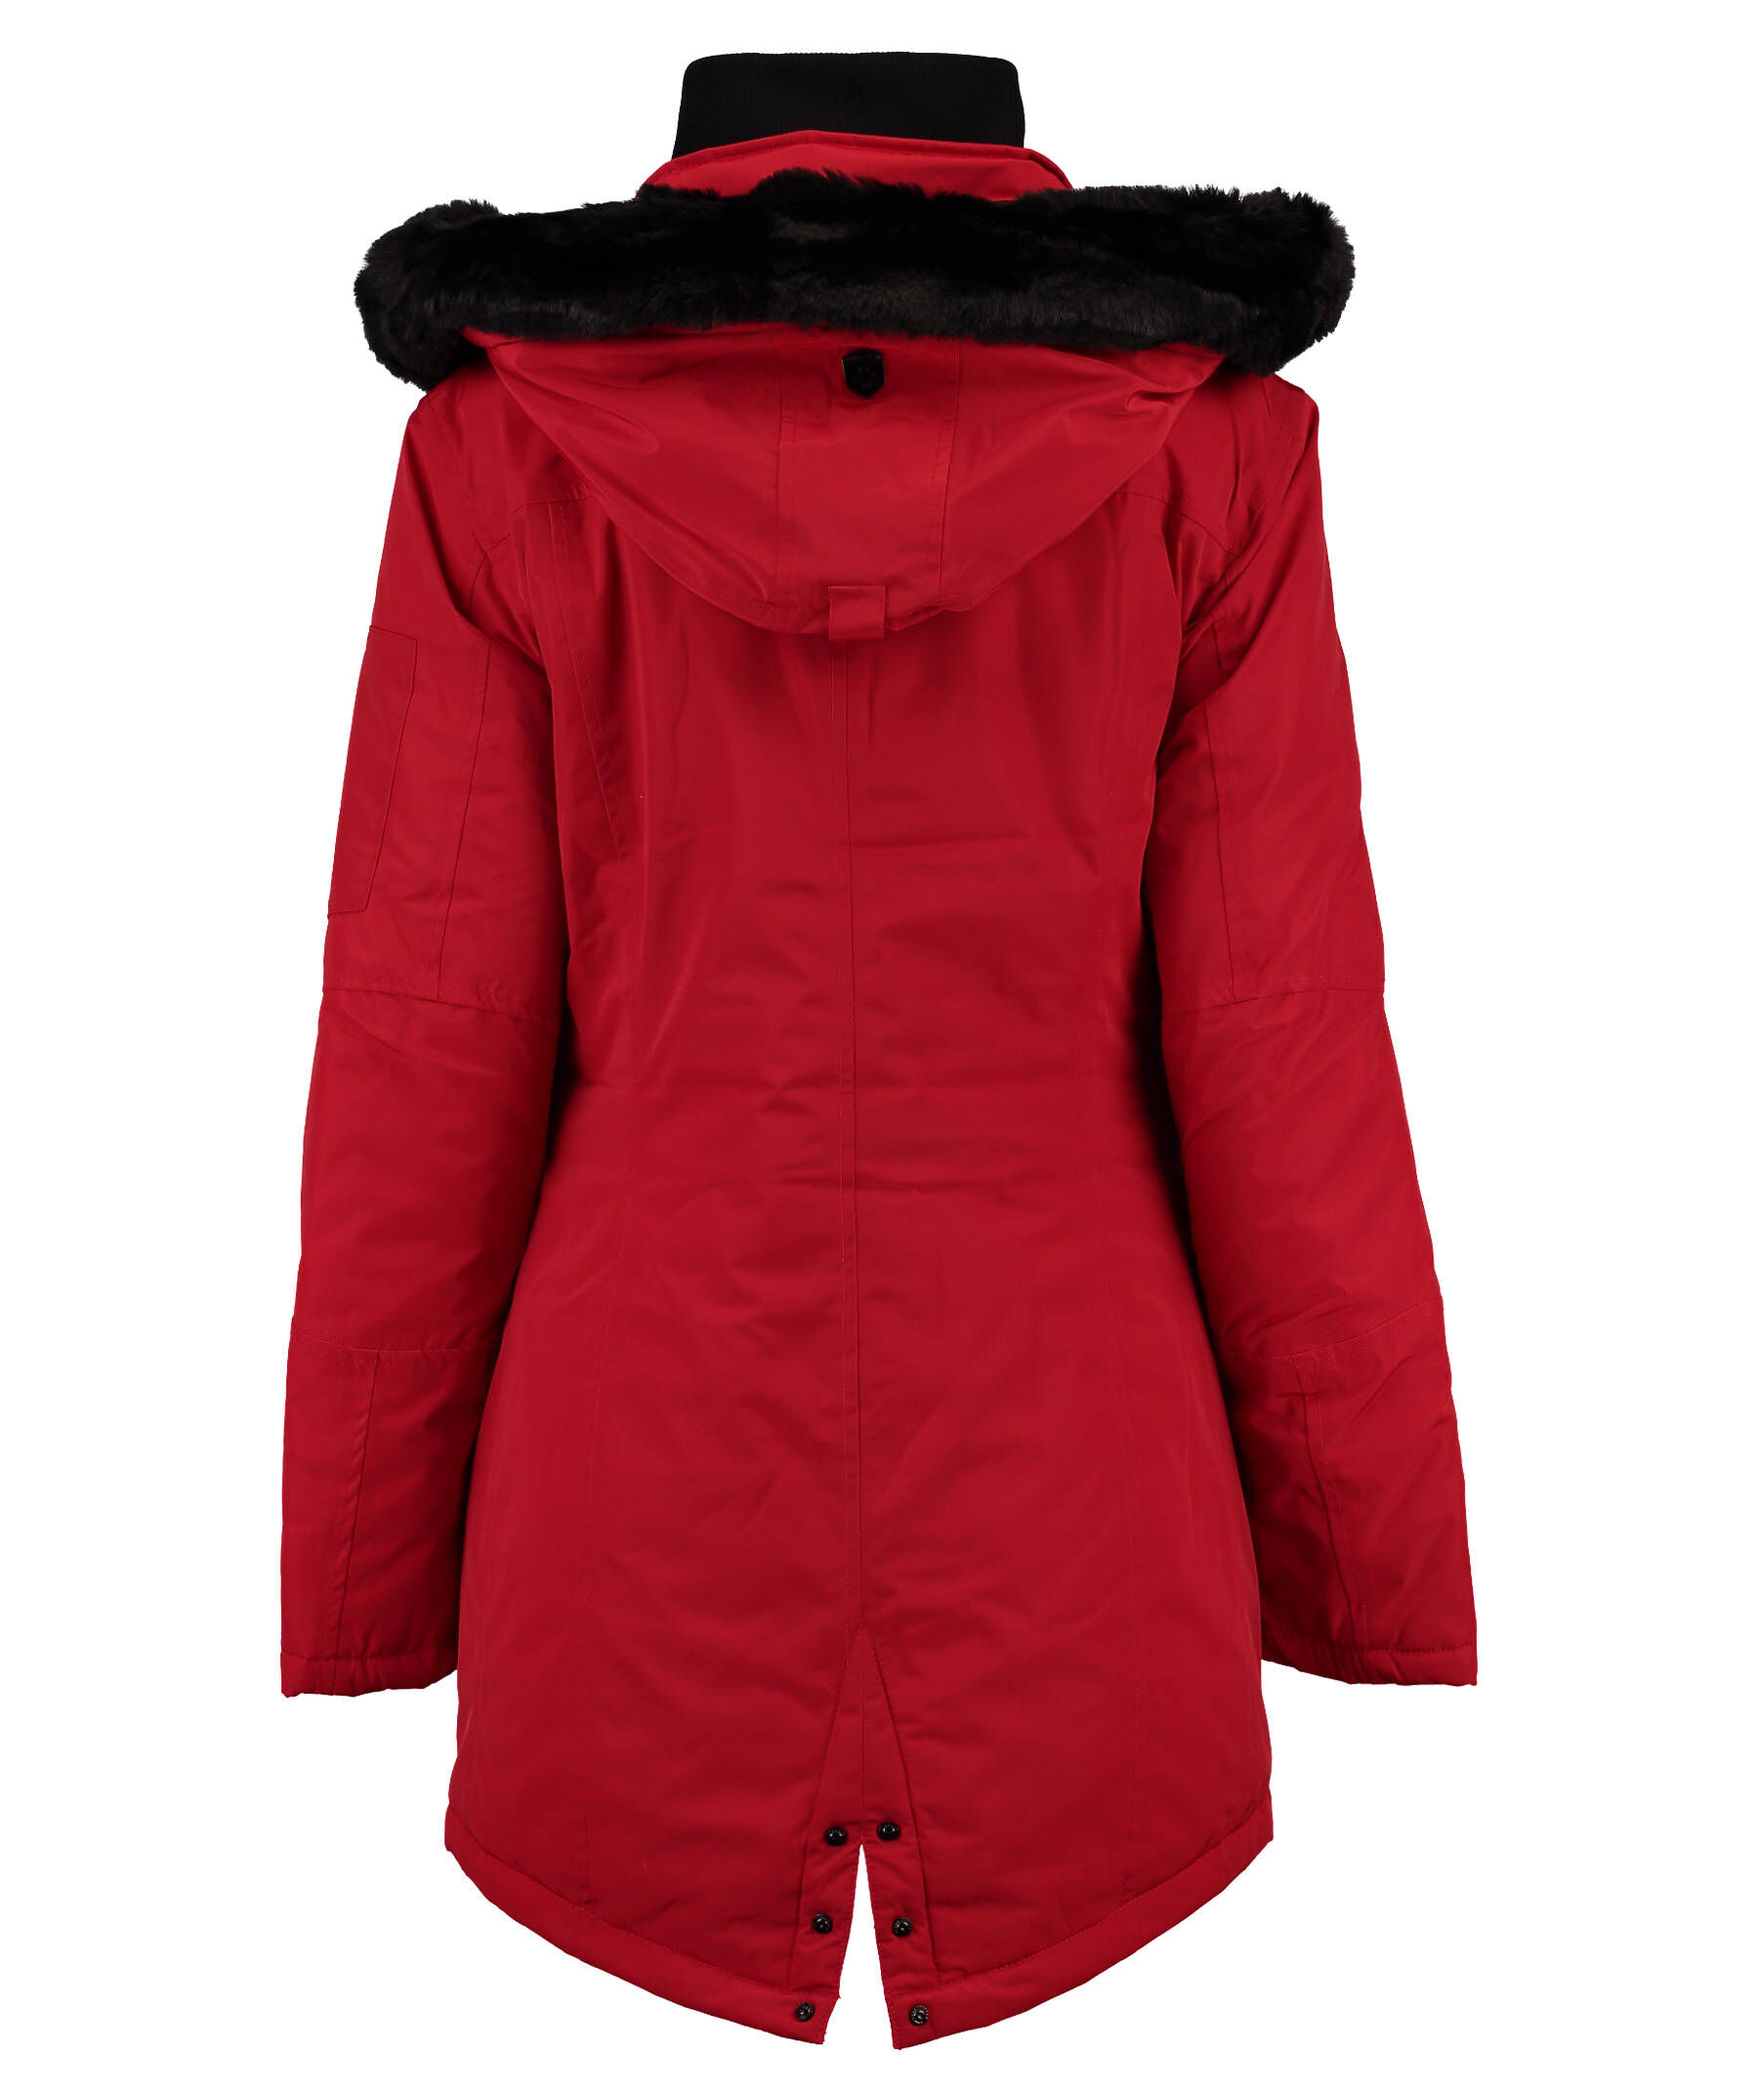 wellensteyn damen parka schneezauber sz 382 rot blau. Black Bedroom Furniture Sets. Home Design Ideas